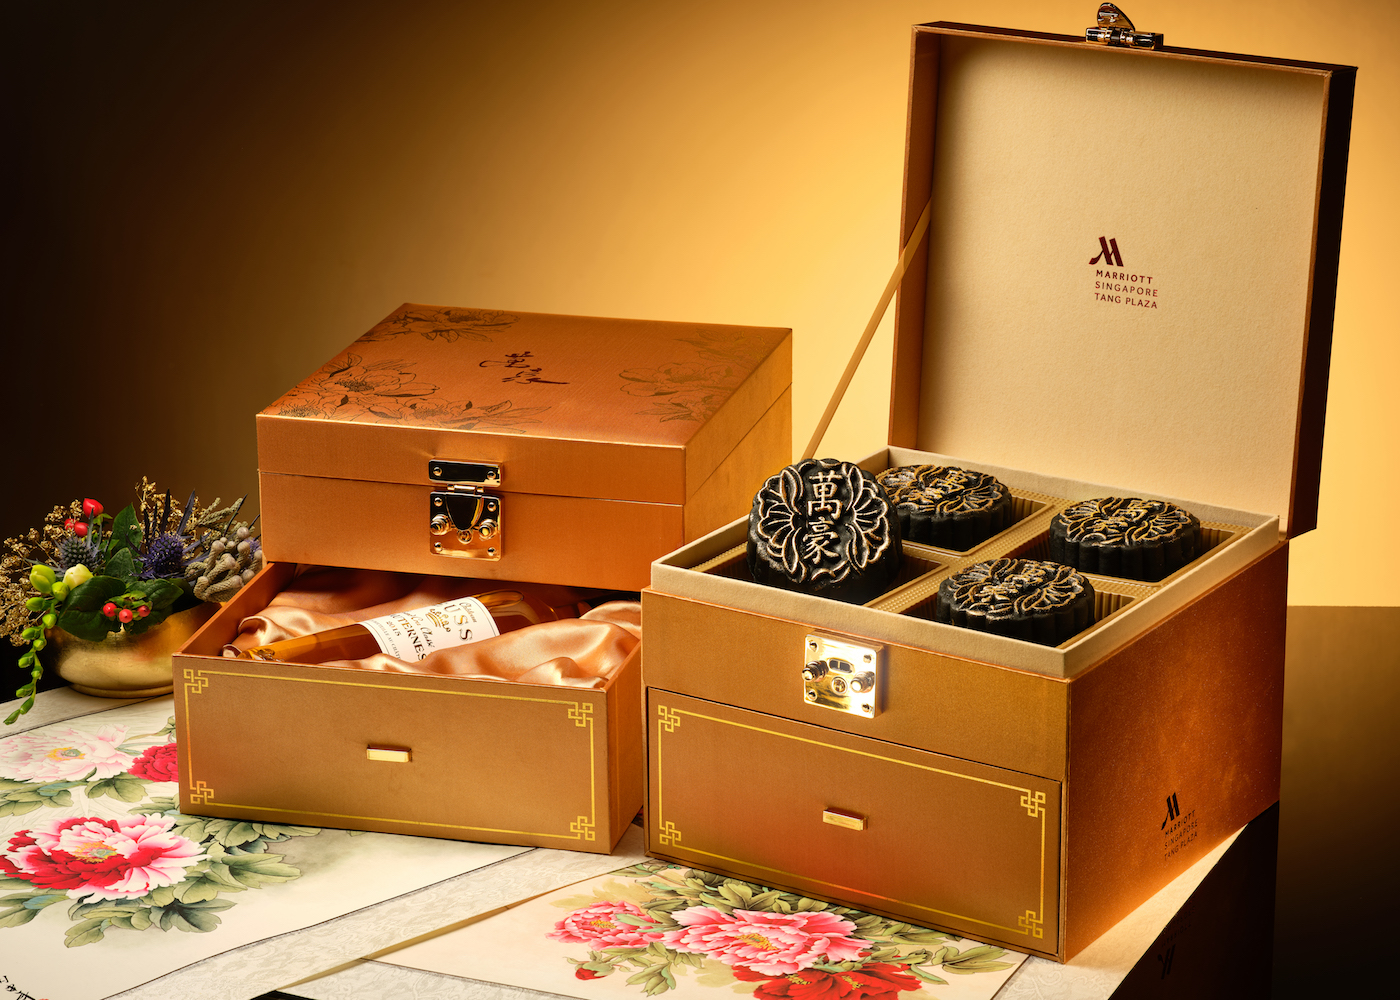 Marriott Tang Plaza Hotel's limited edition Wan Hao premium gift set | Mooncakes in Singapore